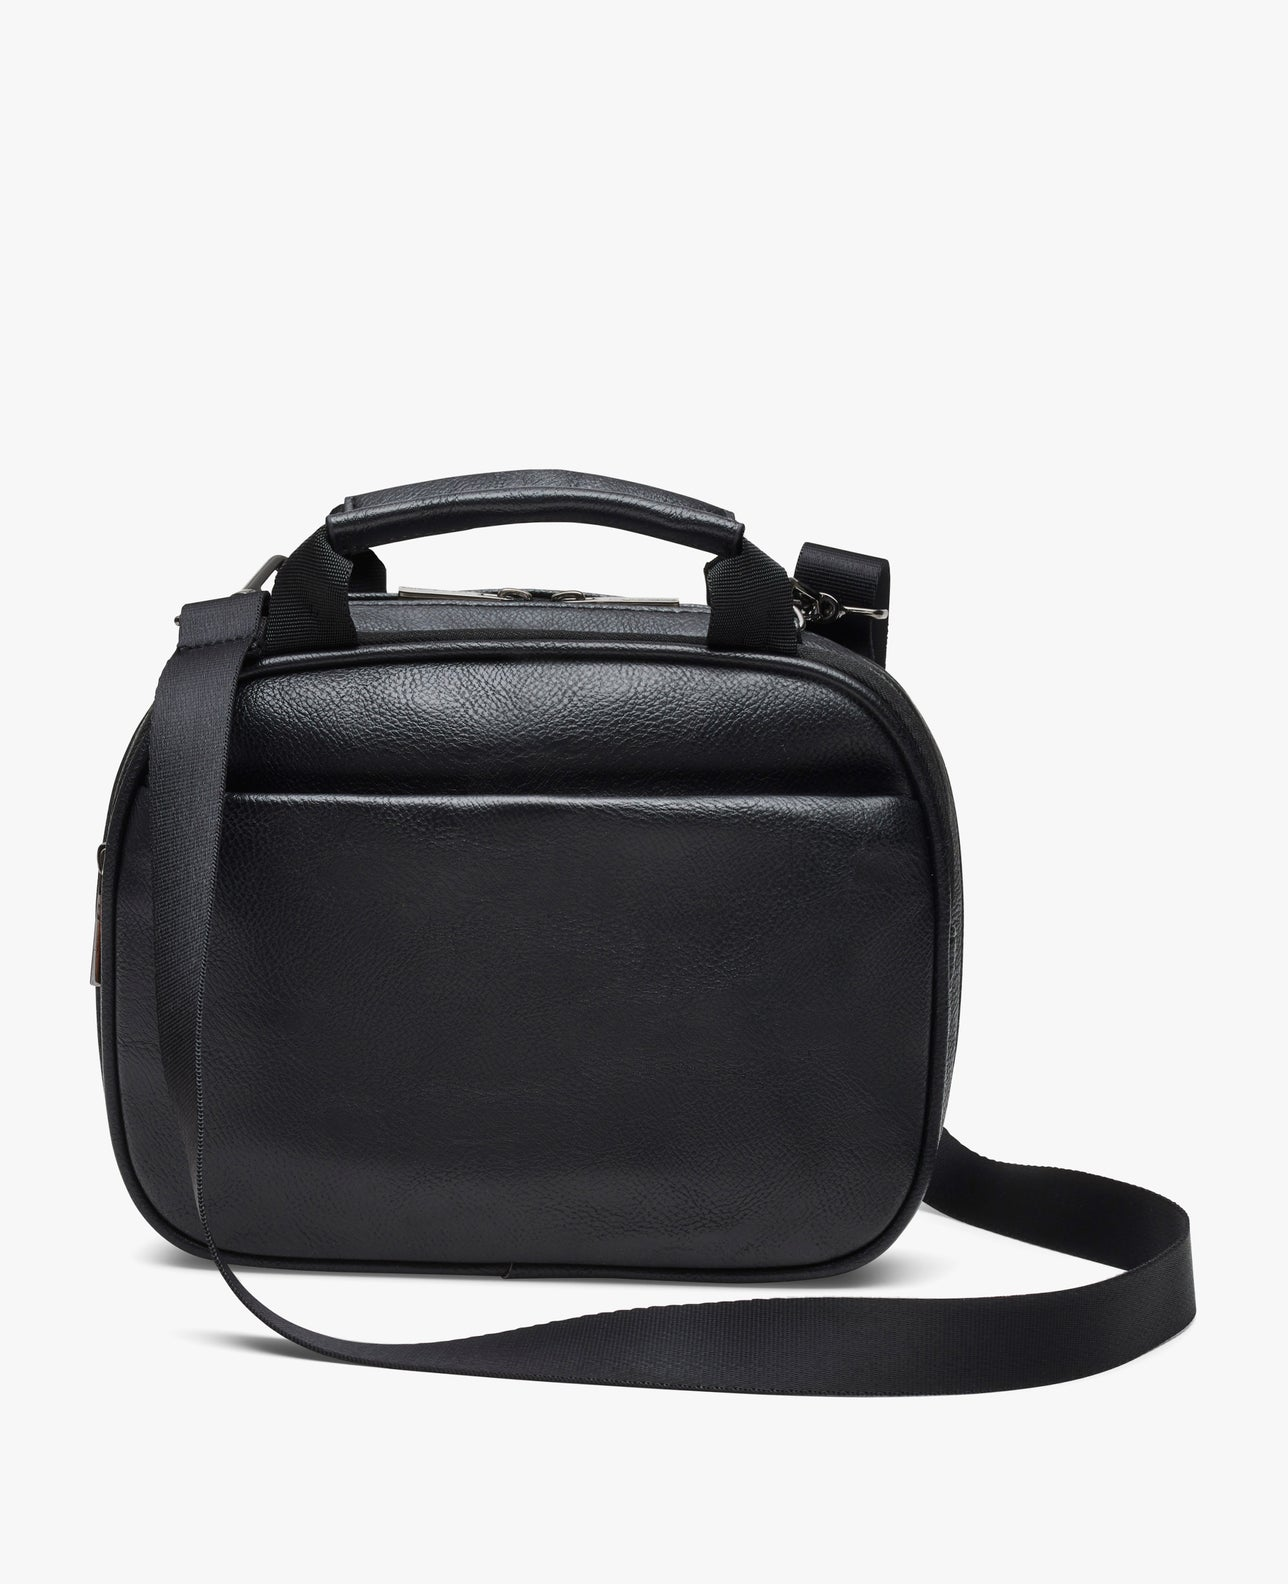 color:Black Vegan Leather